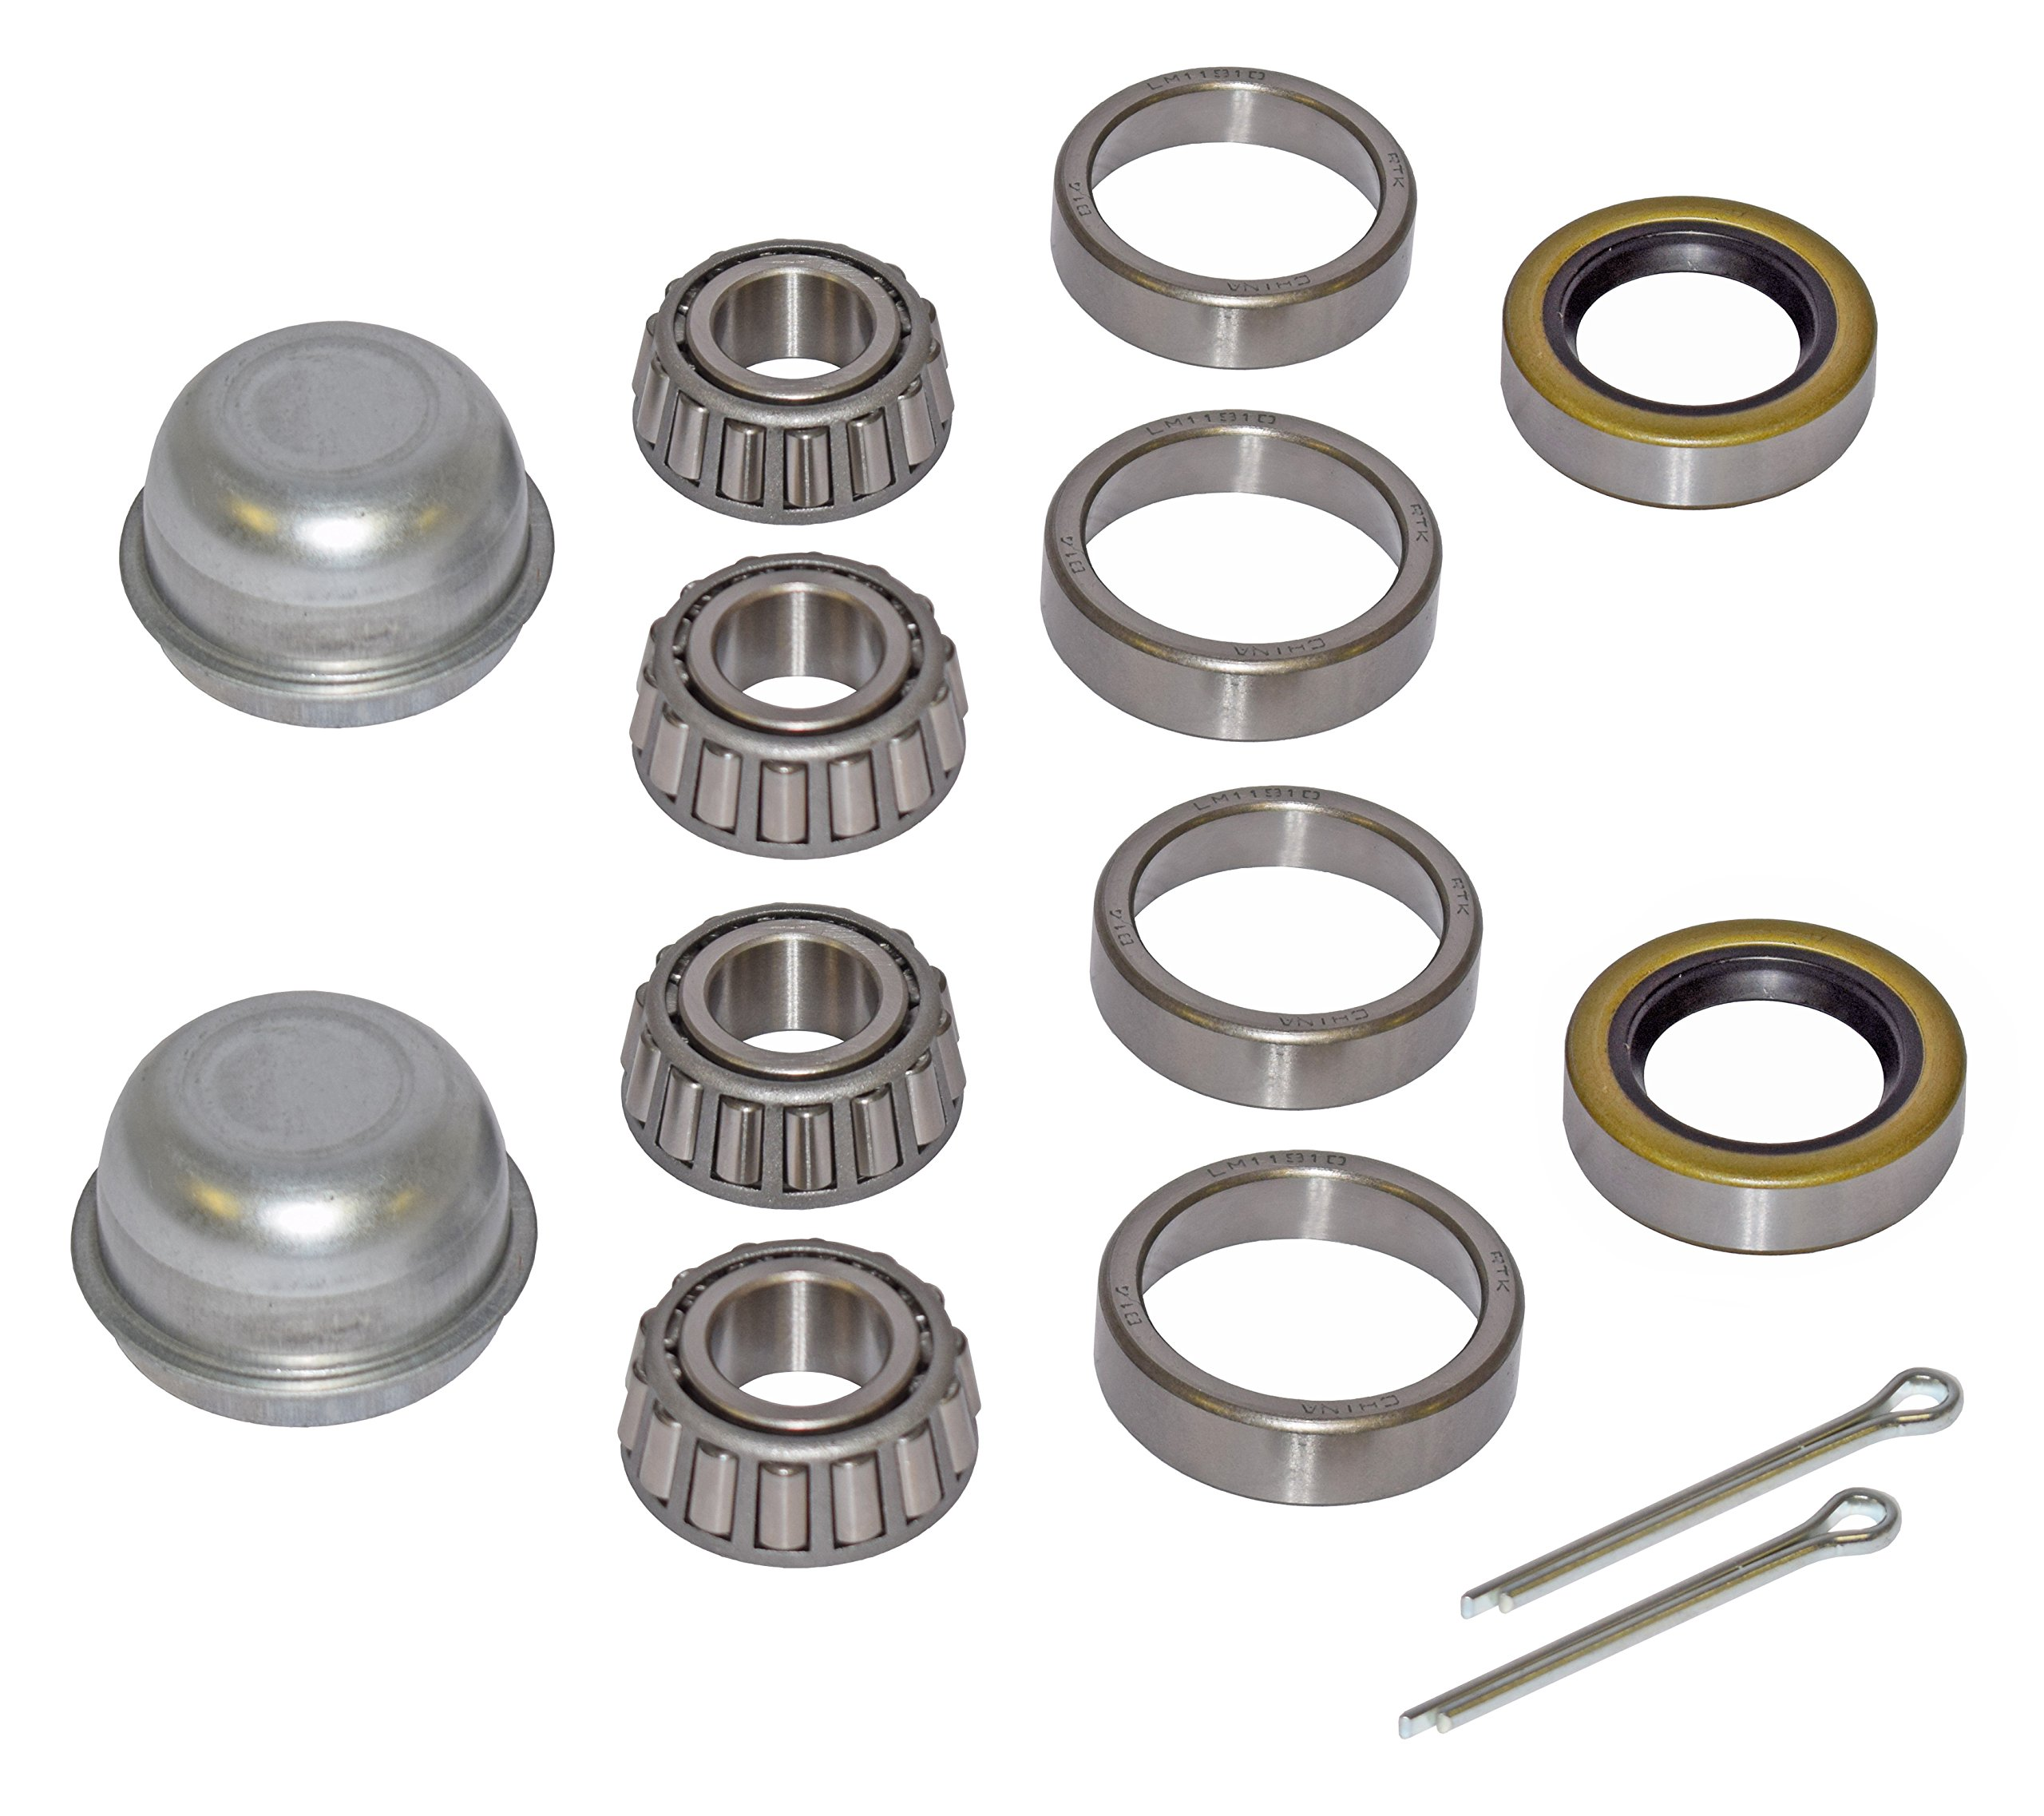 Pair of Trailer Bearing Repair Kits for 3/4 Inch Straight Spindles by Rigid Hitch